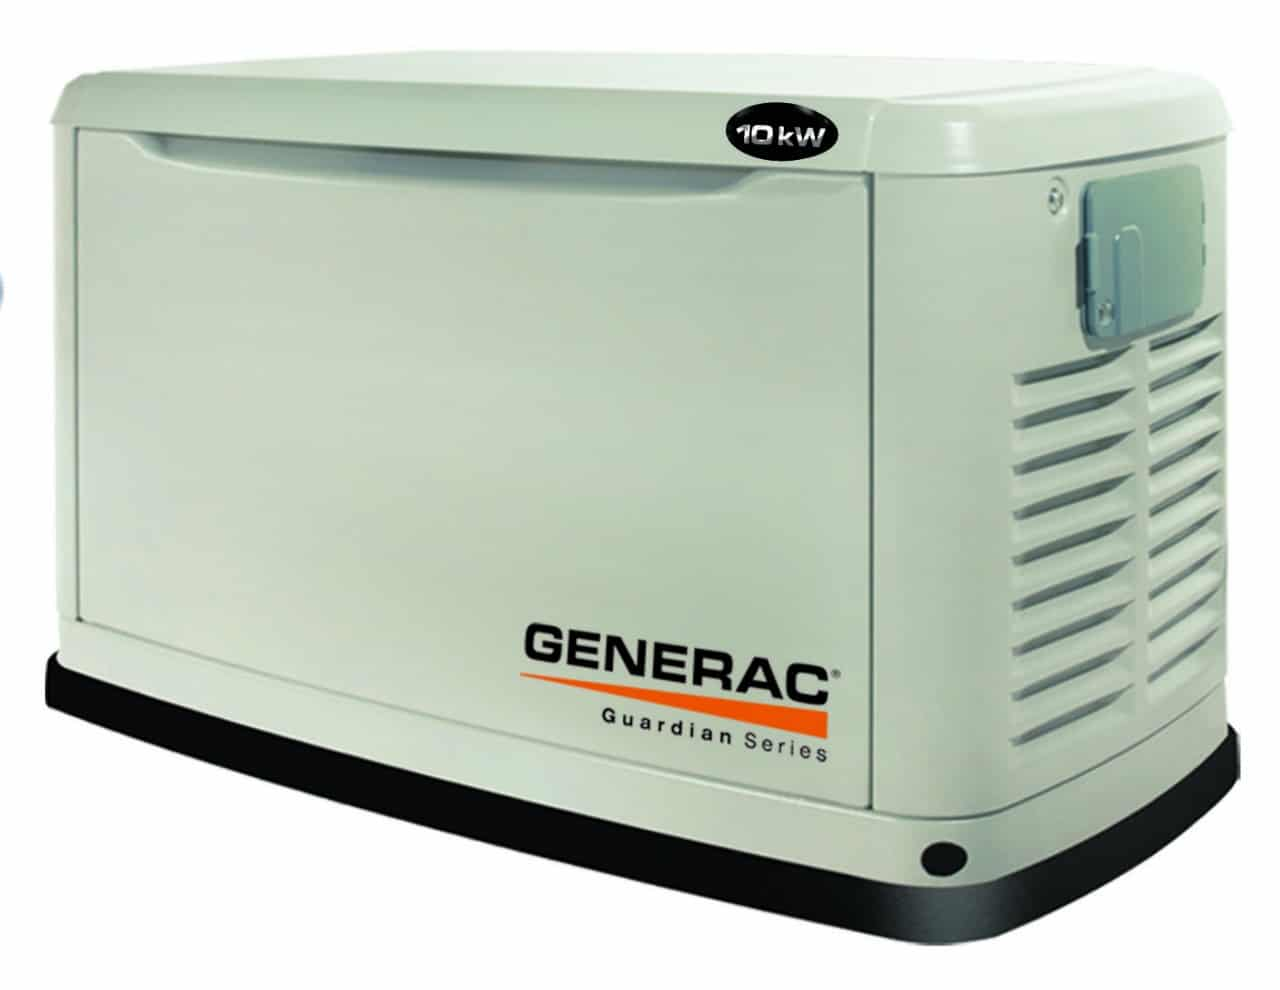 Generac Guardian 10kw Generator W Standby At Norwall Com Home Standby Generator 5883 Generac Generators For Your Home Rv And Portables By Generac Power Systems Norwall Powersystems